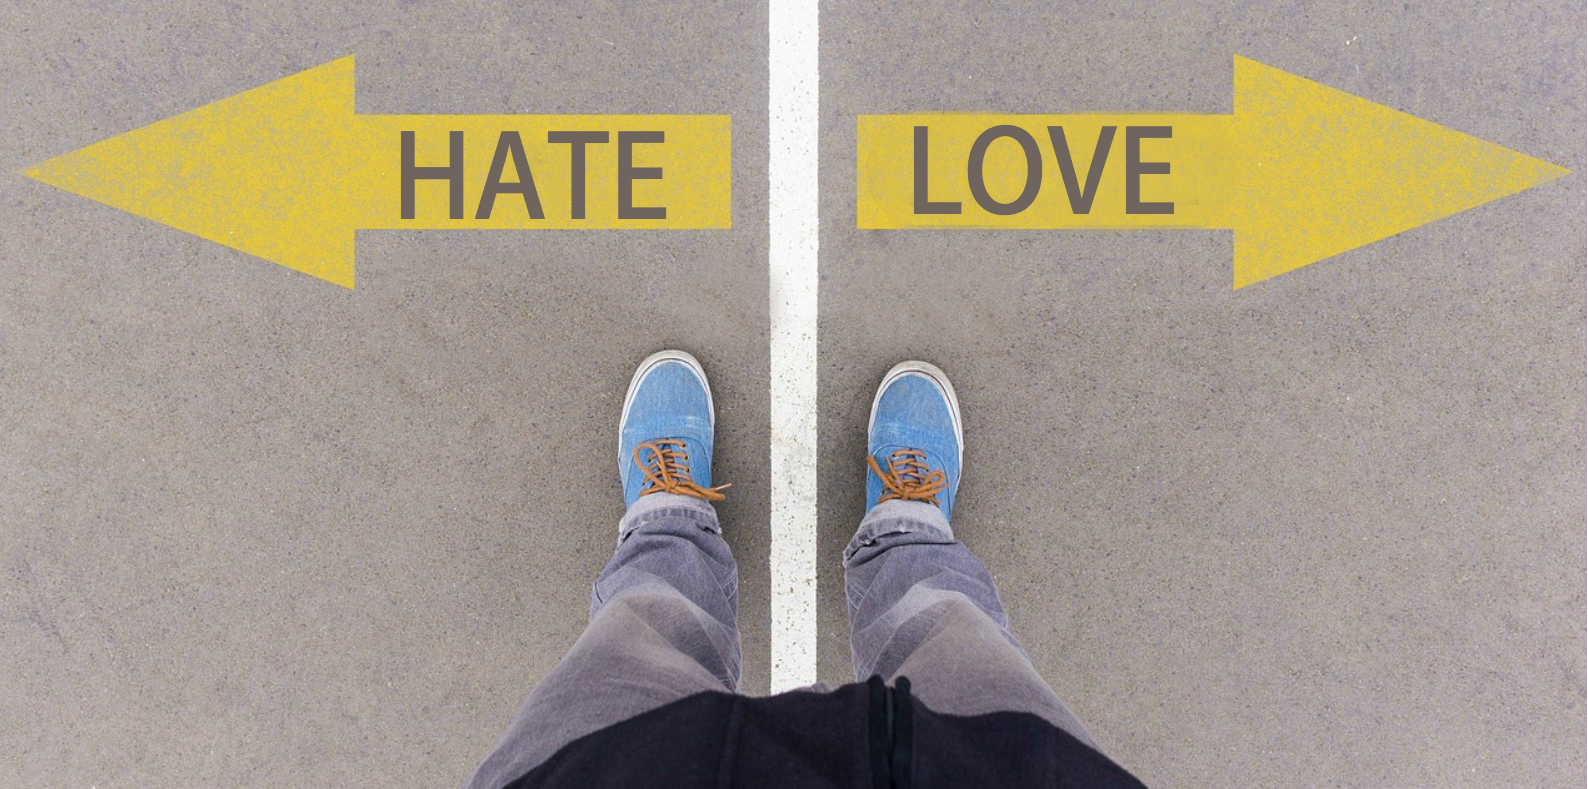 Sikh Love vs Hate Fork in the Road